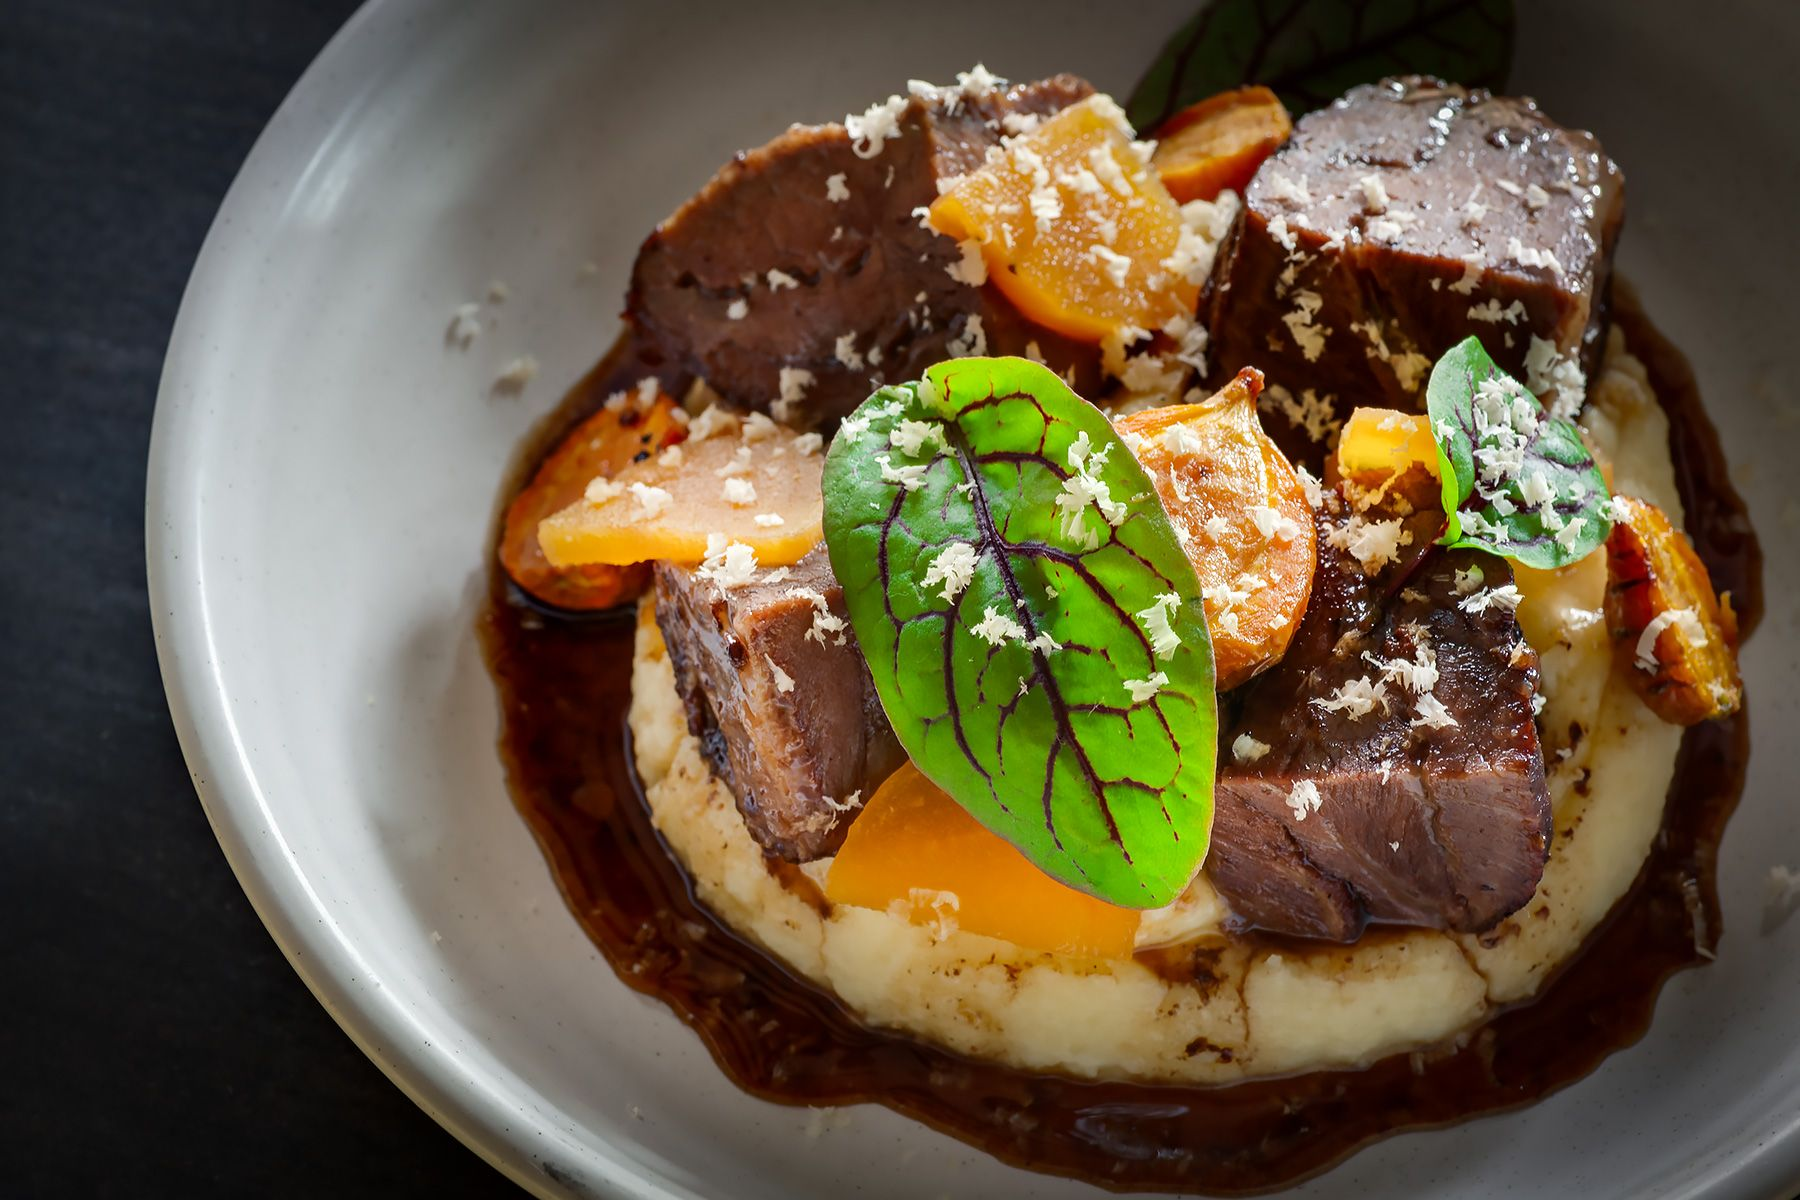 AK_WASMO_KingRye_beef_cheek-7242.jpg